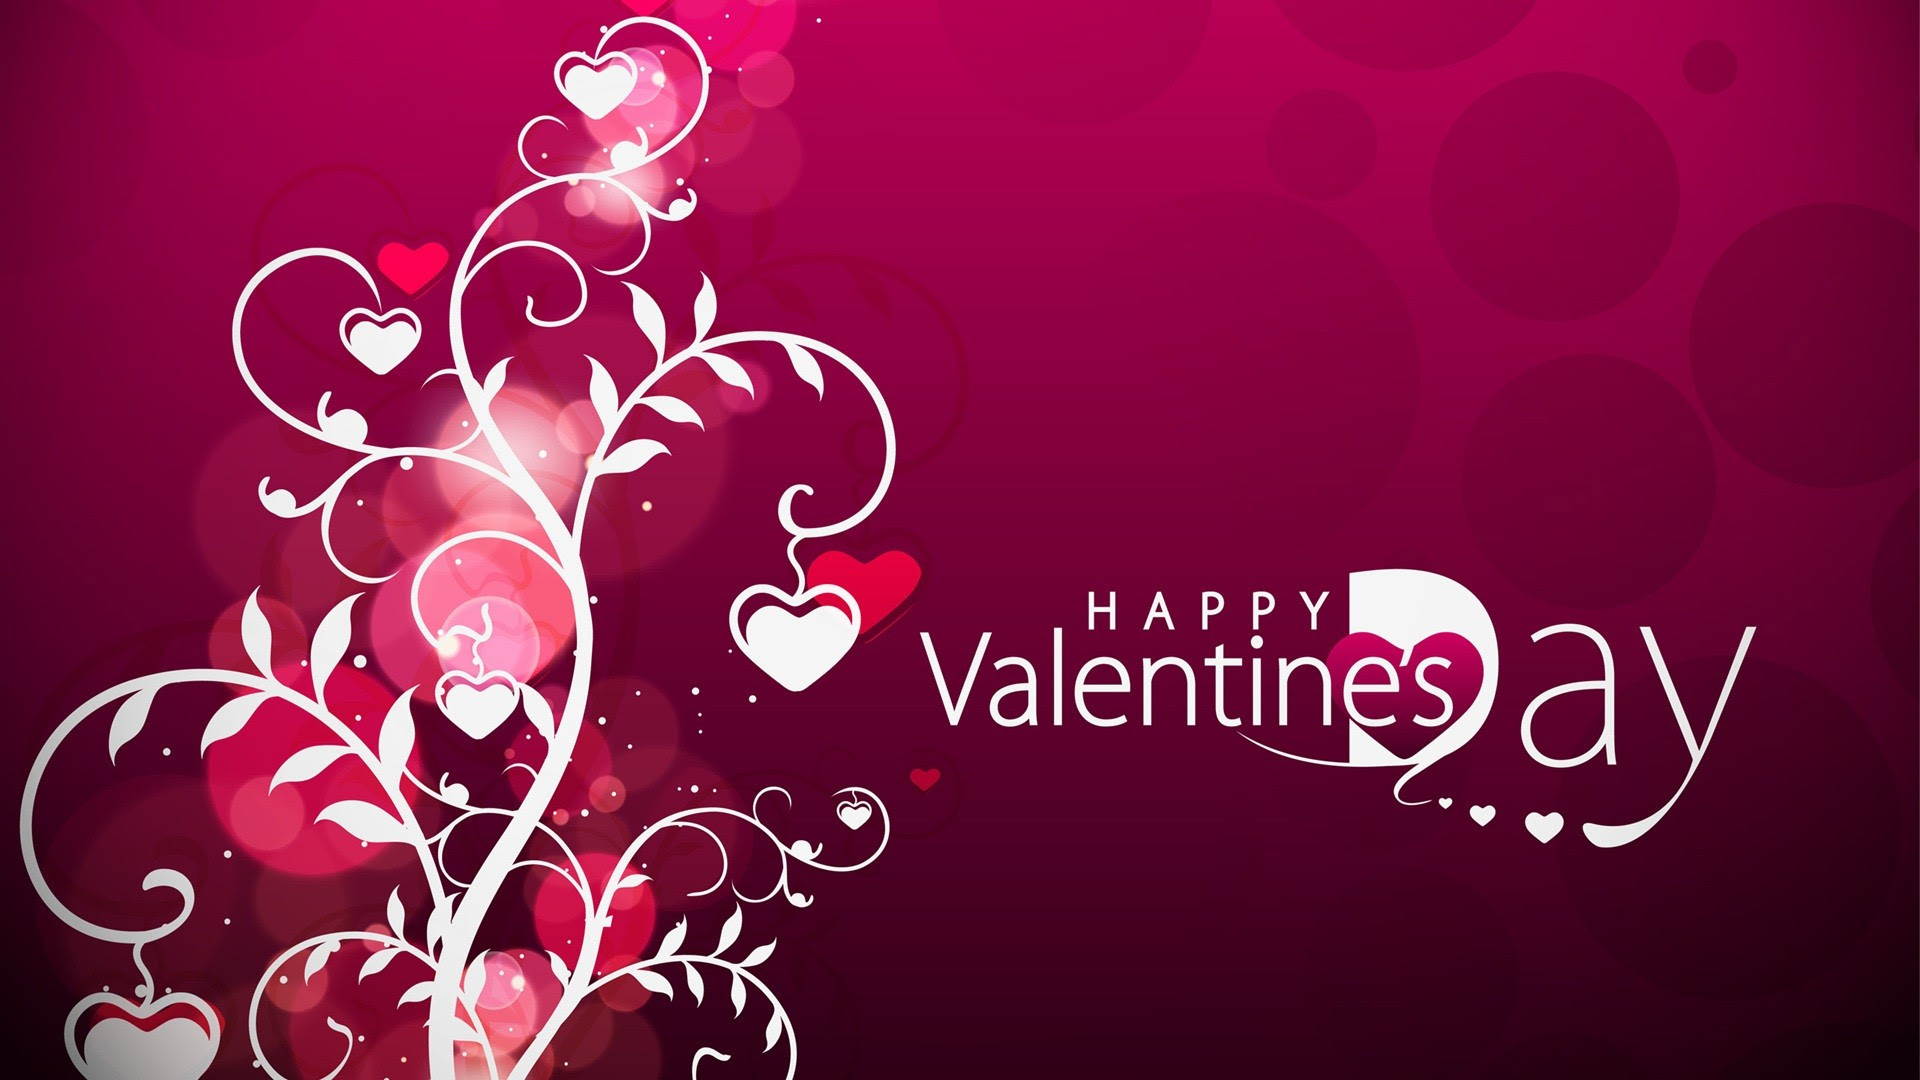 Valentineu002639;s Day Wallpapers and Backgrounds